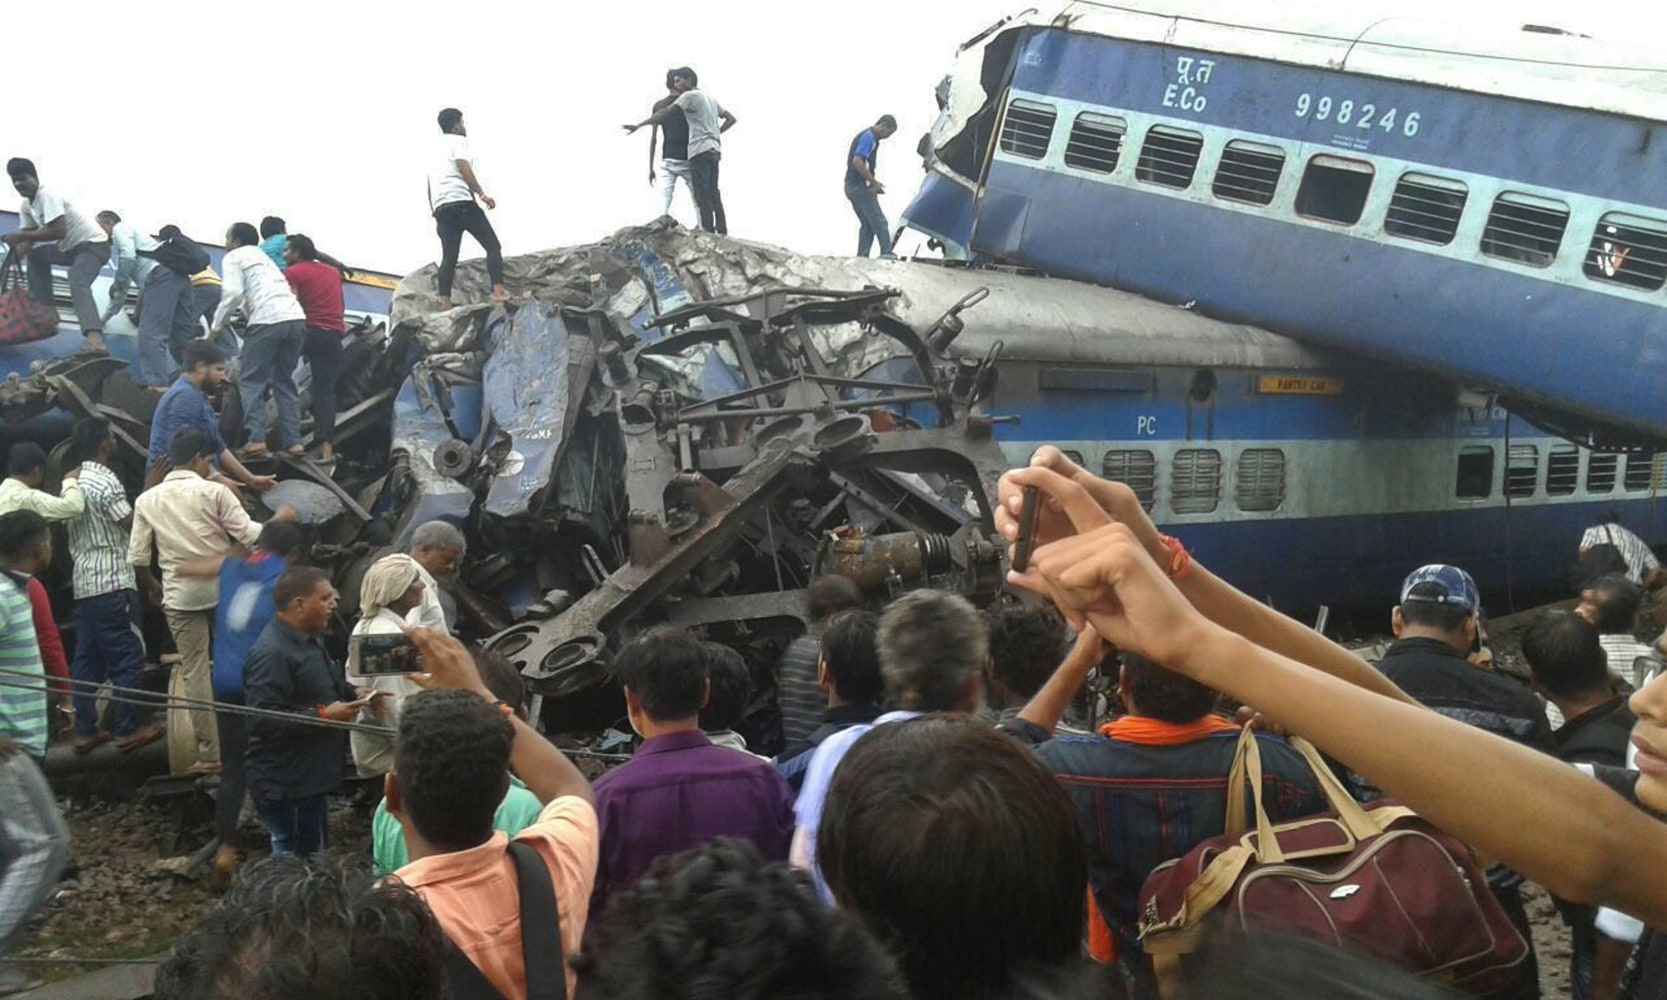 At least 10 dead after train derails in India